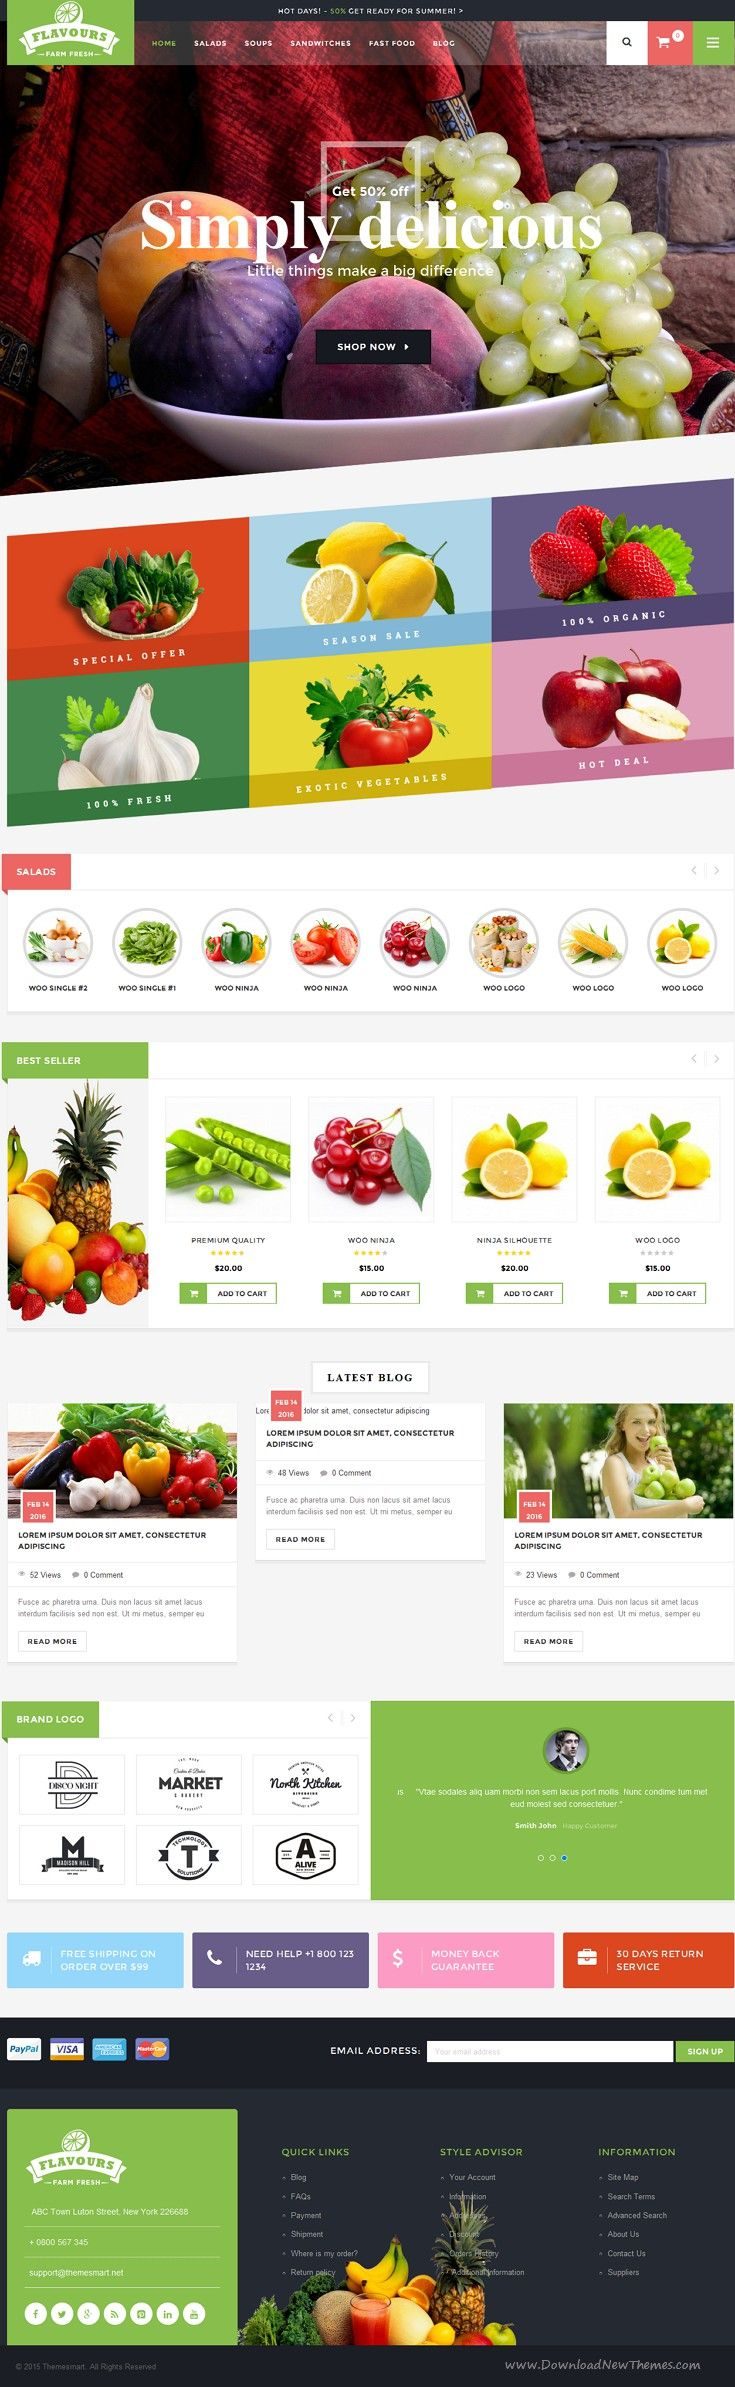 Flavours is a responsive WordPress WooCommerce theme for #supermarket, #organic food store or any eCommerce shop #website. Download Now!